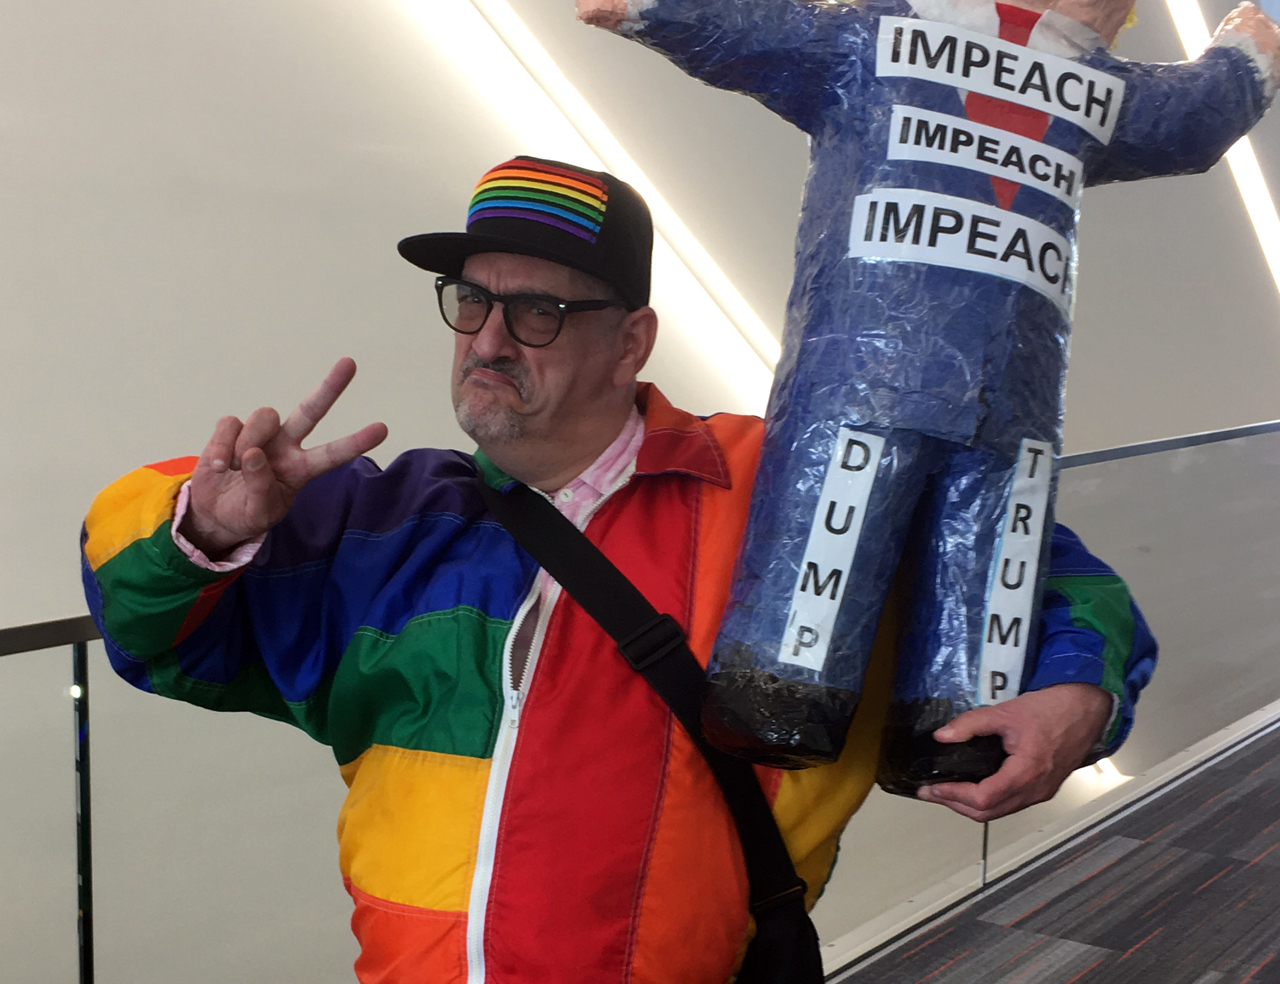 Activist and writer Michael Petrelis was one of many... uh, colorful characters on parade at the California Democratic Party convention in at the Moscone Center in San Francisco, May 31-June 2, 2019. (Photo/Dan Pine)